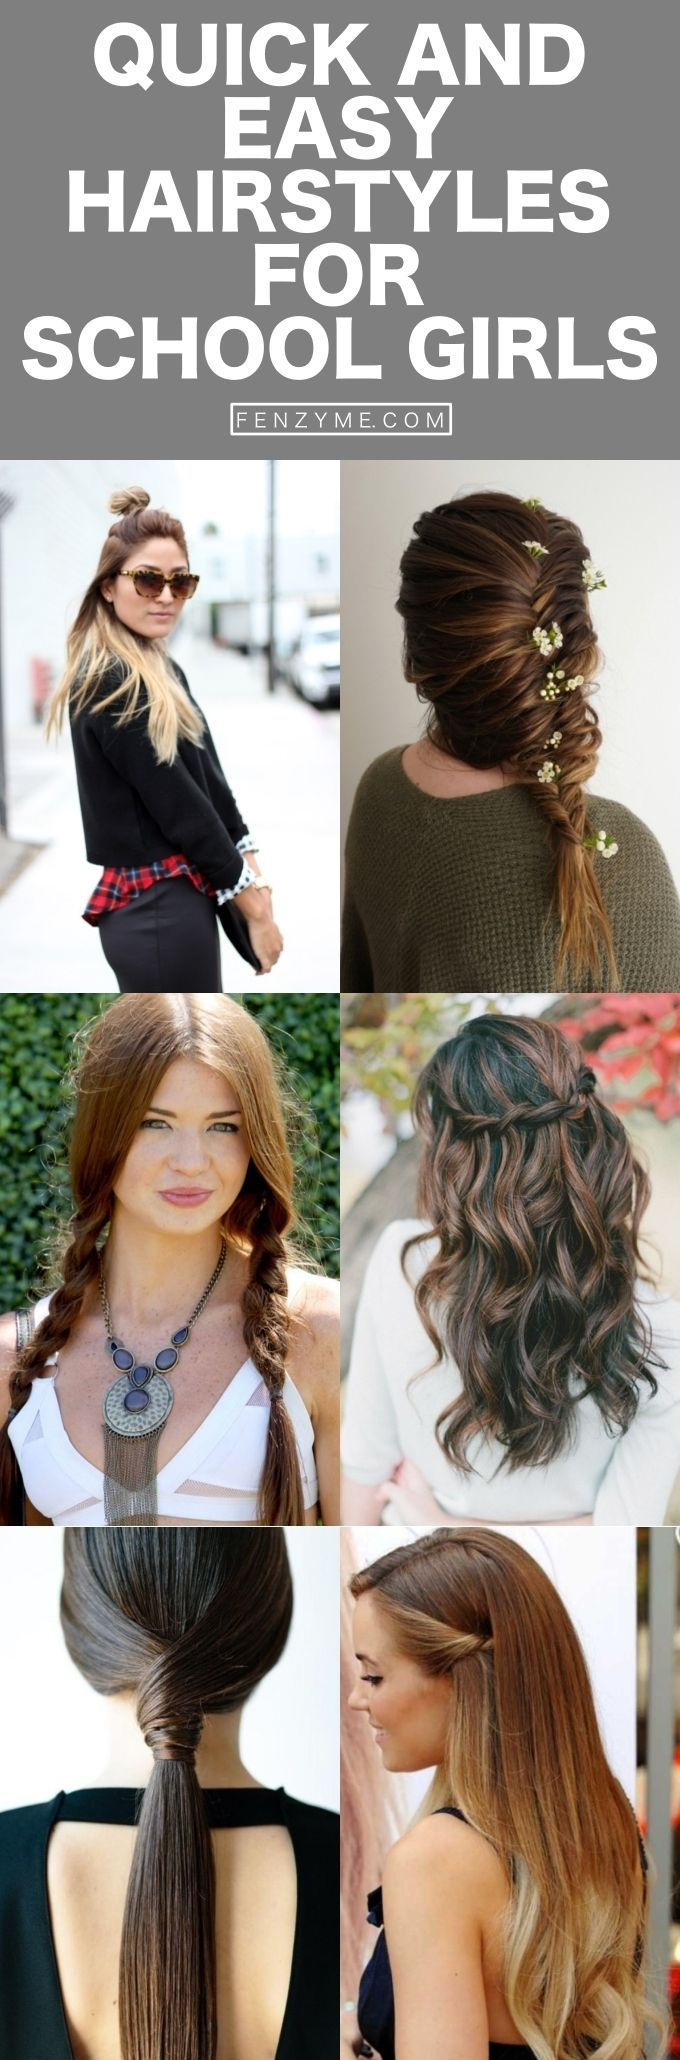 quick and easy hairstyles for school girls  hairstyles